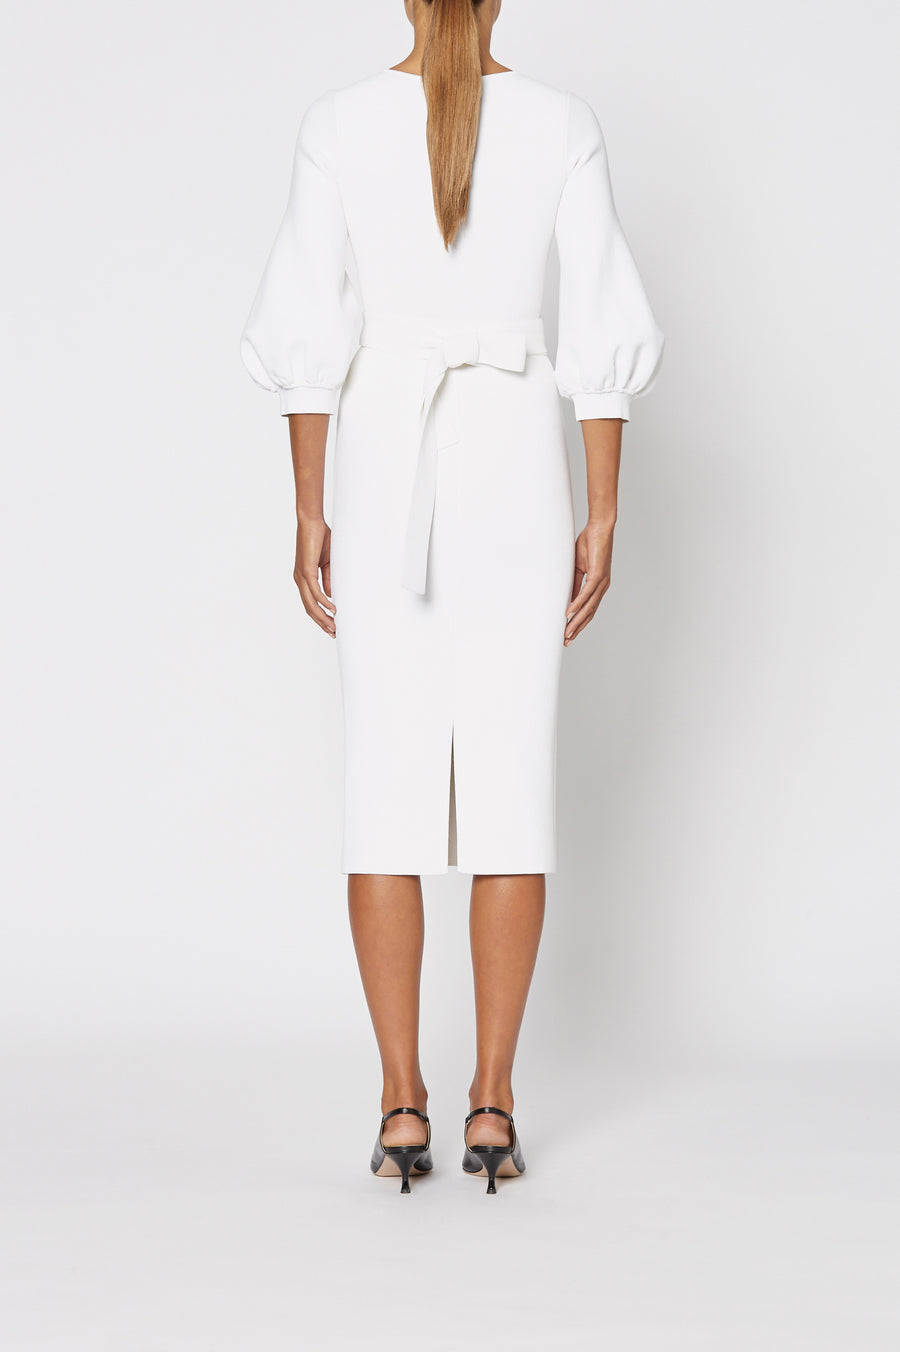 Crepe Knit Cocoon Sleeve Dress, tailored V neck, cocoon sleeves, waist belt and pencil skirt to below the knee. Separate belt in same fabric is inc. Color White